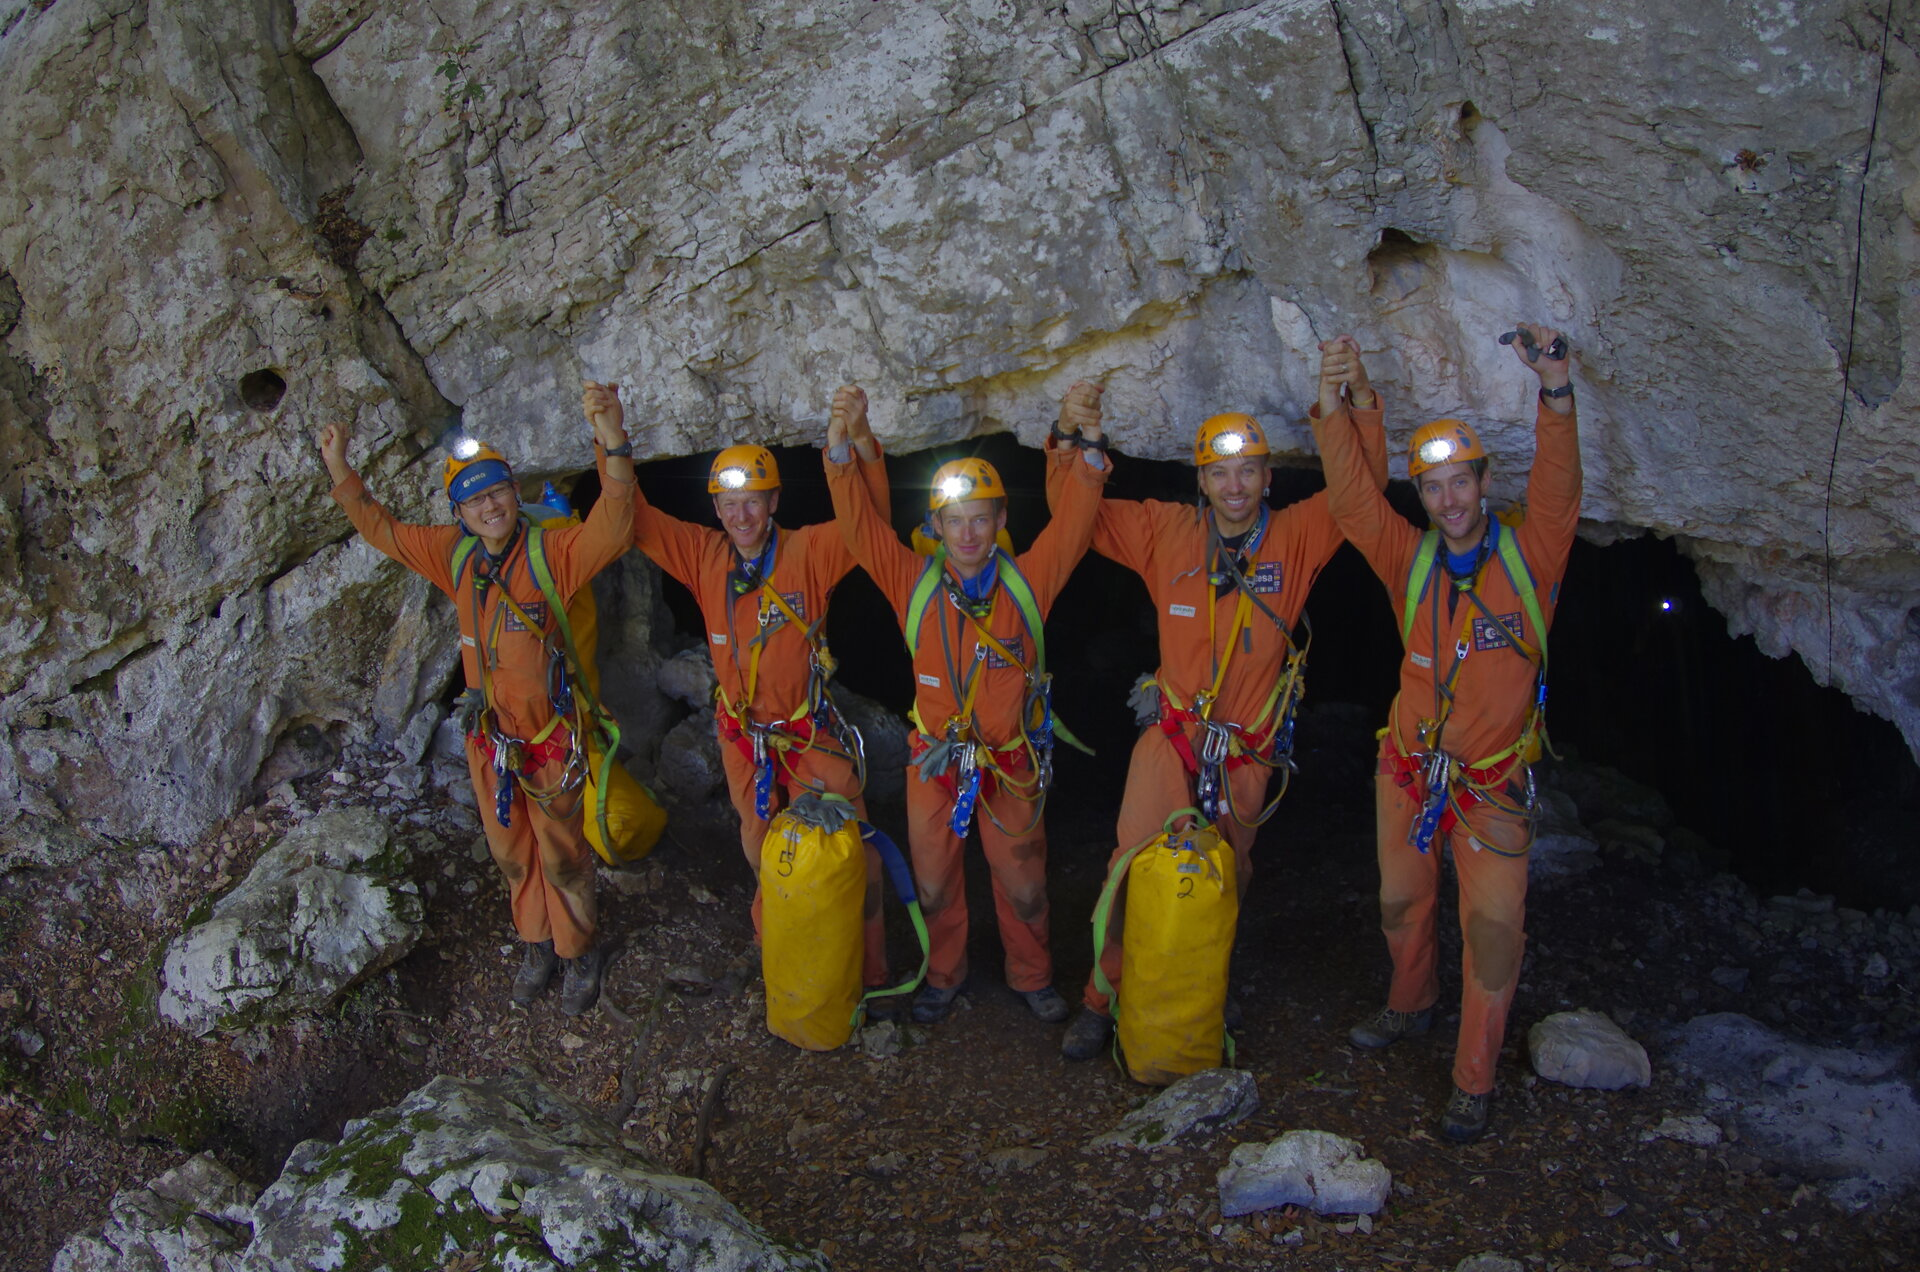 The caving team after return to the surface on 21 September.